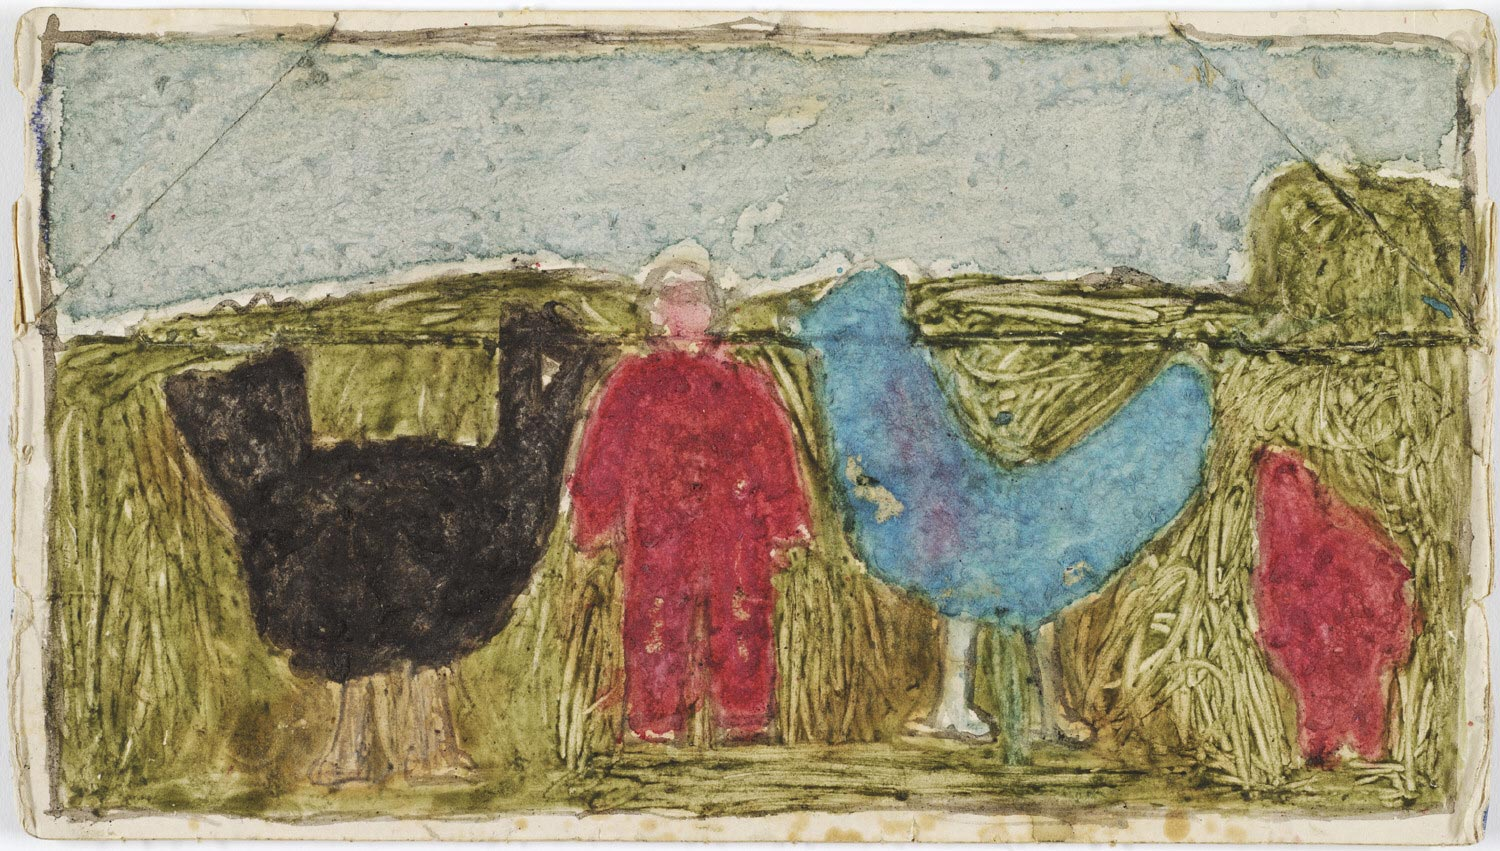 Untitled (Man in red between two giant chickens)